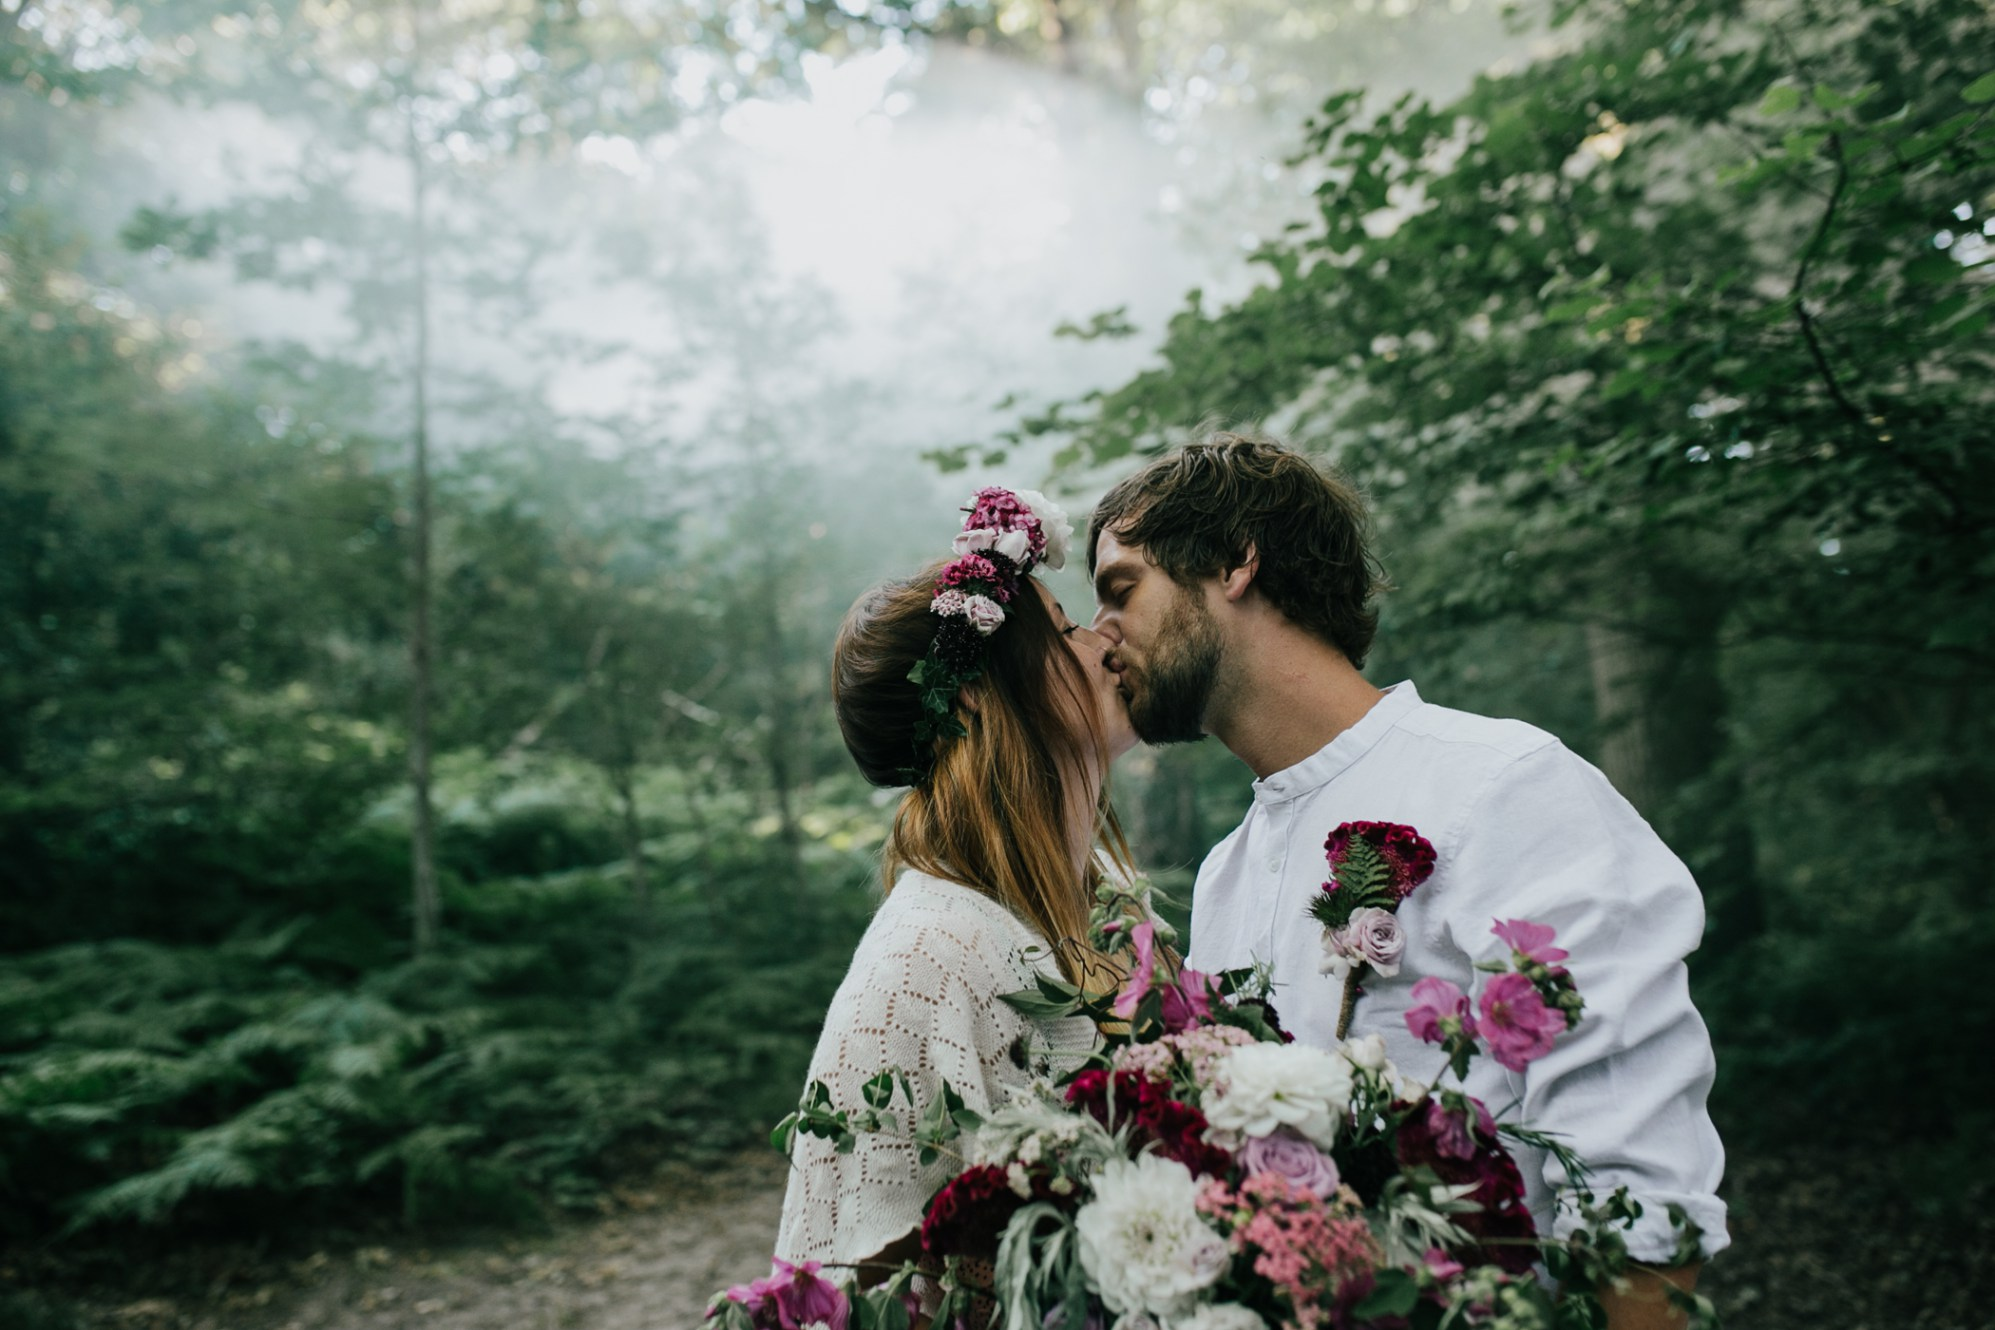 Caroline Goosey - alternative wedding photography - engagement shoot 2